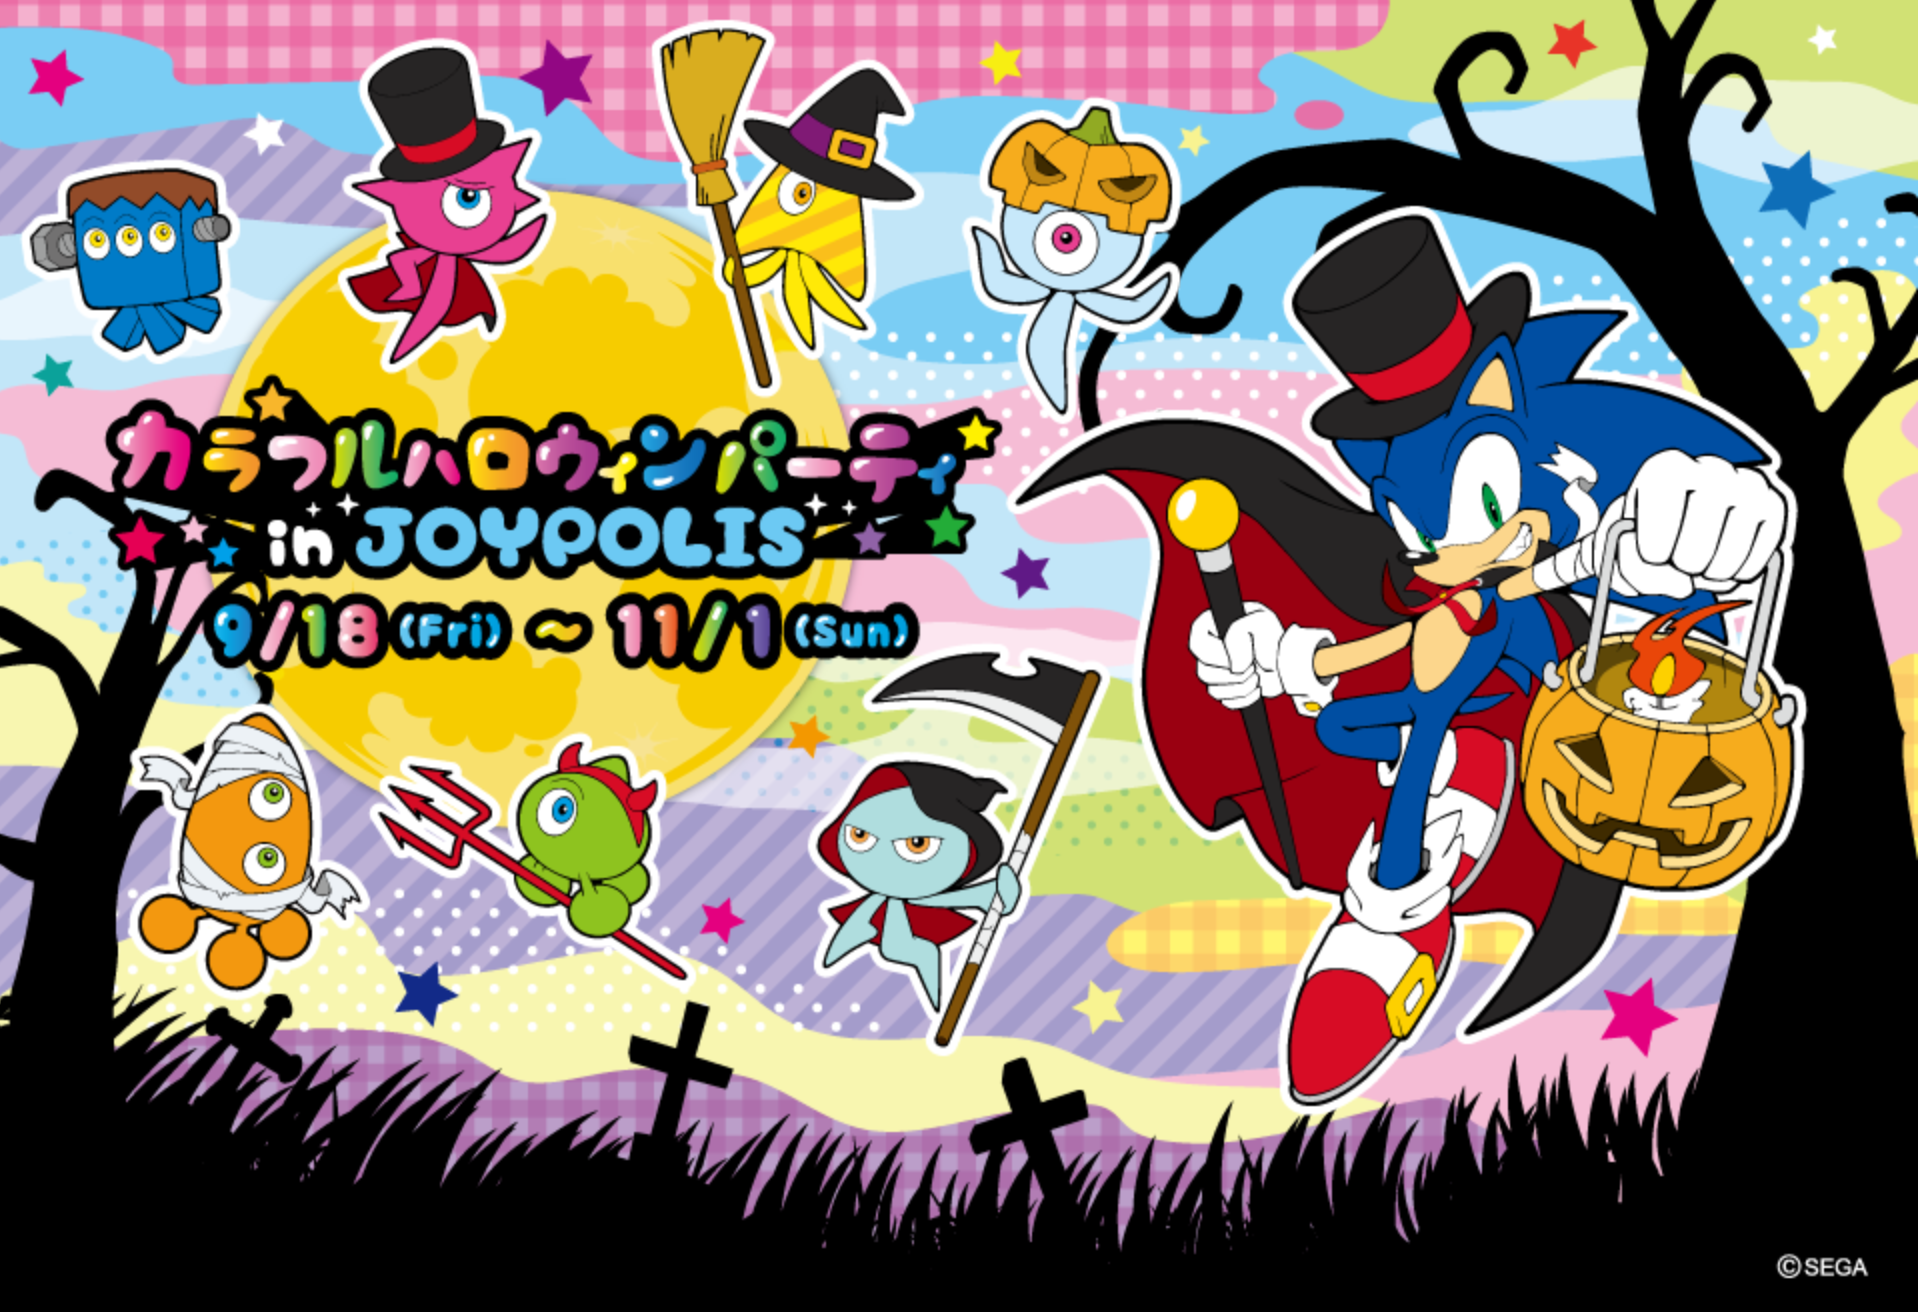 Halloween Party In Tokyo 2020 Tokyo Joypolis Celebrates Sonic Colours' 10th Anniversary With